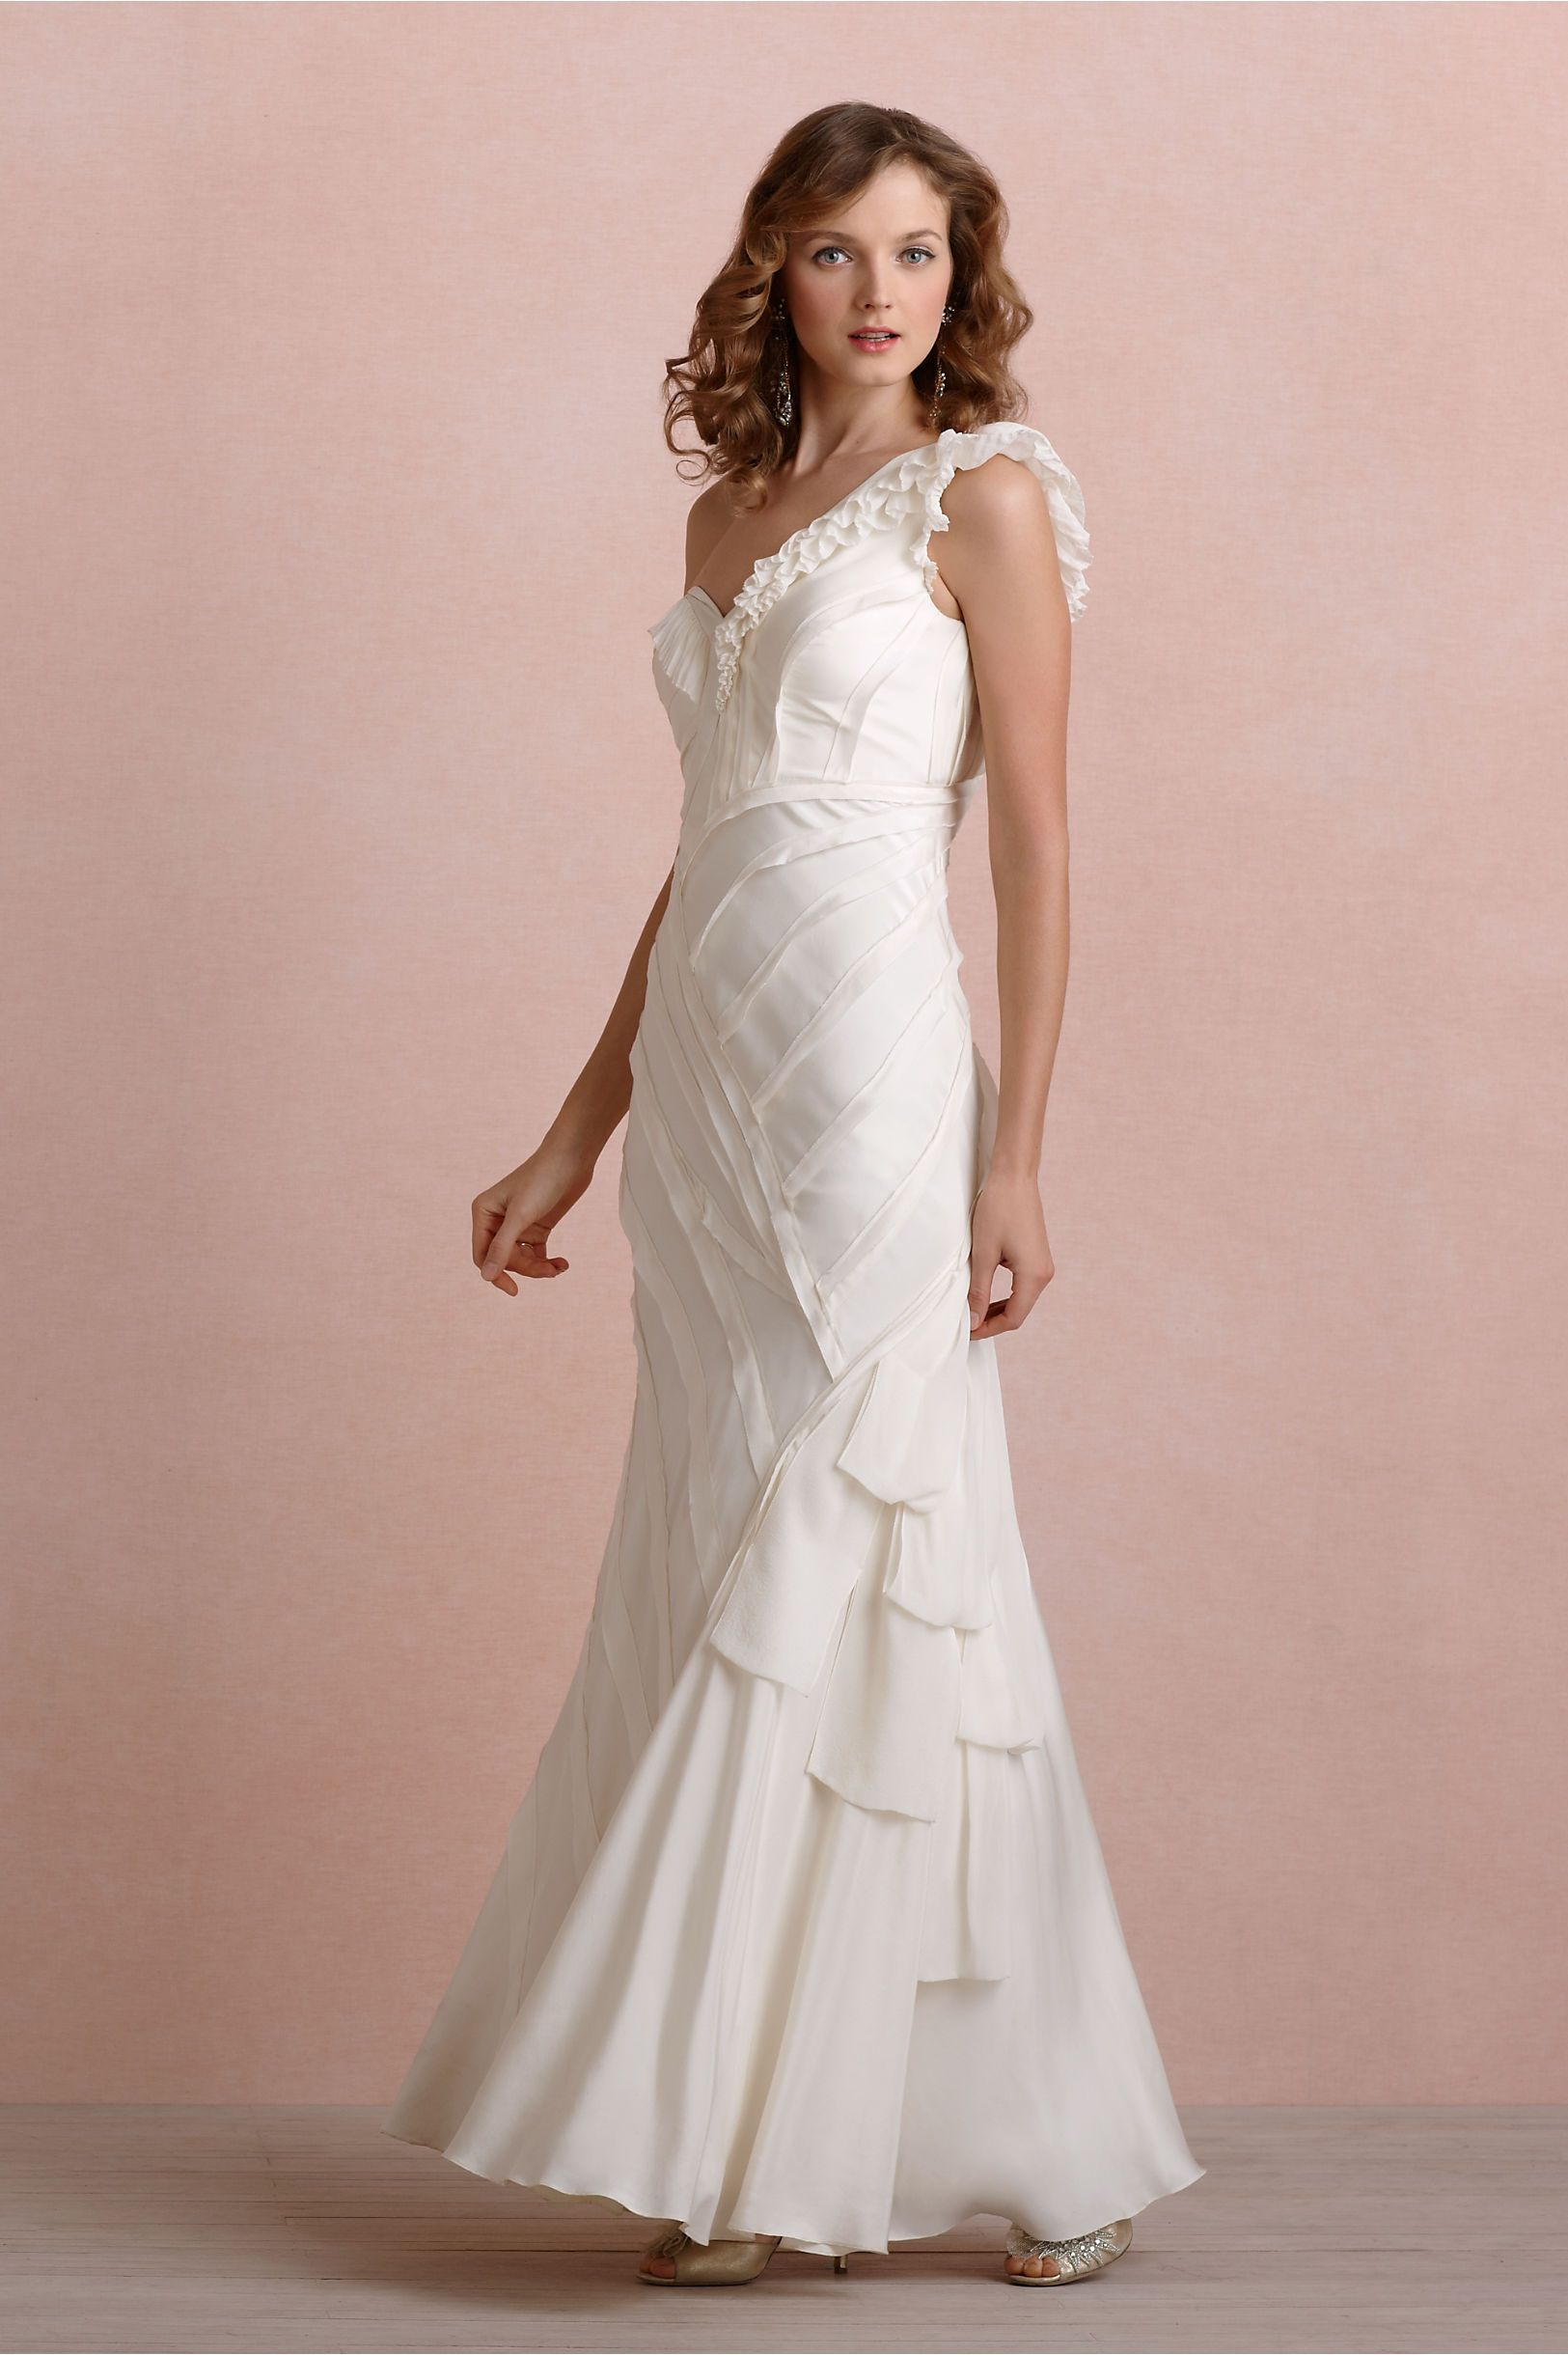 Zac posen wedding dress  Ribboned Silk Gown from BHLDN  My absolutely lovely and perfect